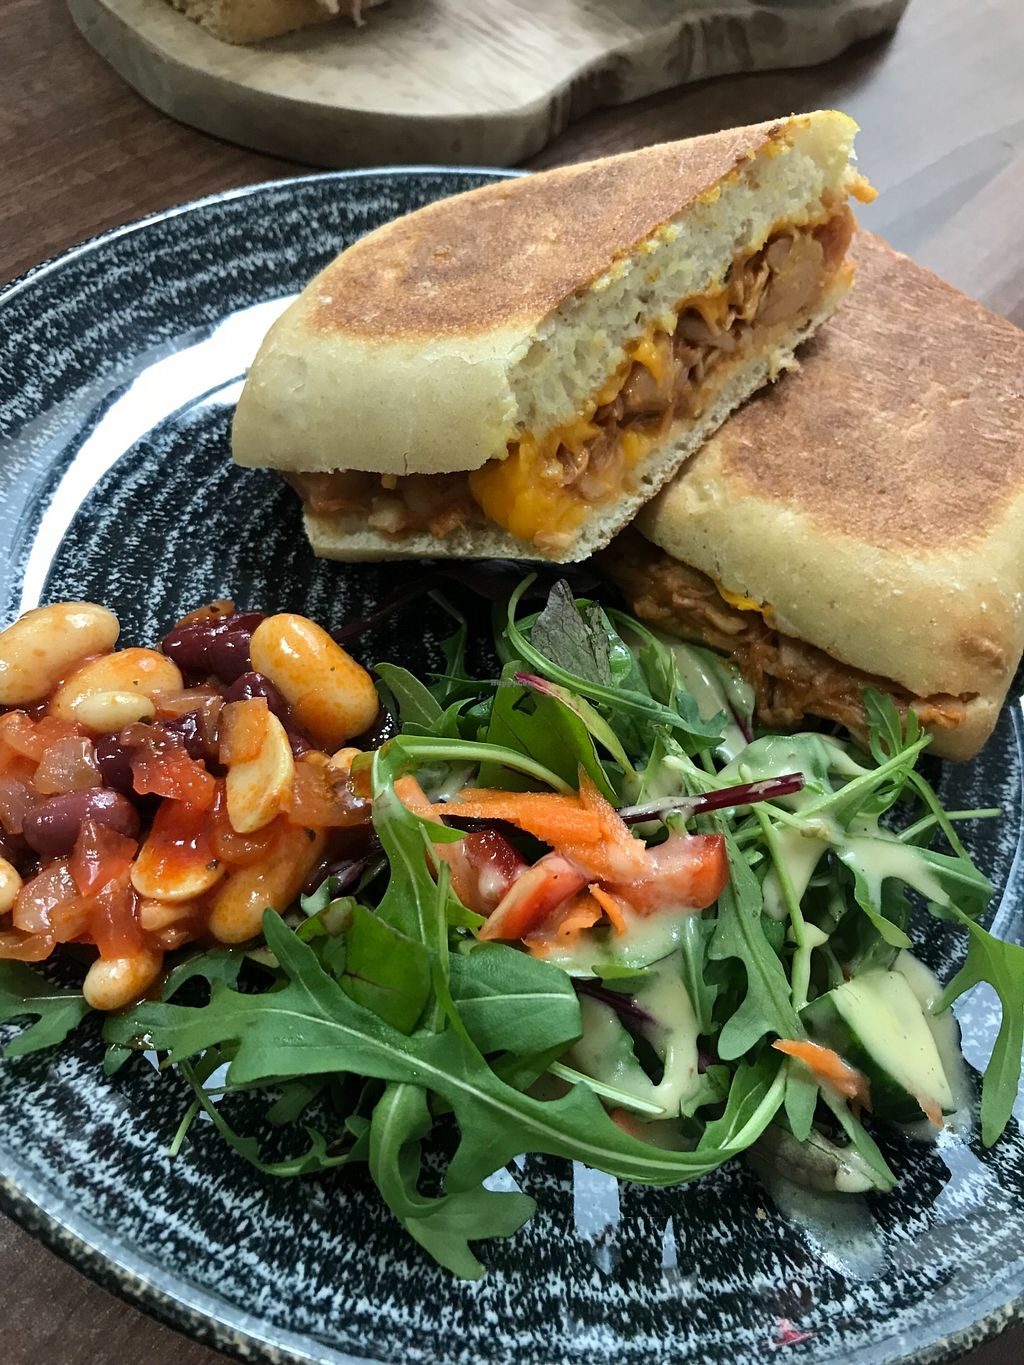 """Photo of The Flame Tree Cafe  by <a href=""""/members/profile/AshleighC"""">AshleighC</a> <br/>Vegan bbq jackfruit and violife panini.  One of the new options from the Flame Tree Cafe's updated 2018 menu <br/> February 19, 2018  - <a href='/contact/abuse/image/76399/361402'>Report</a>"""